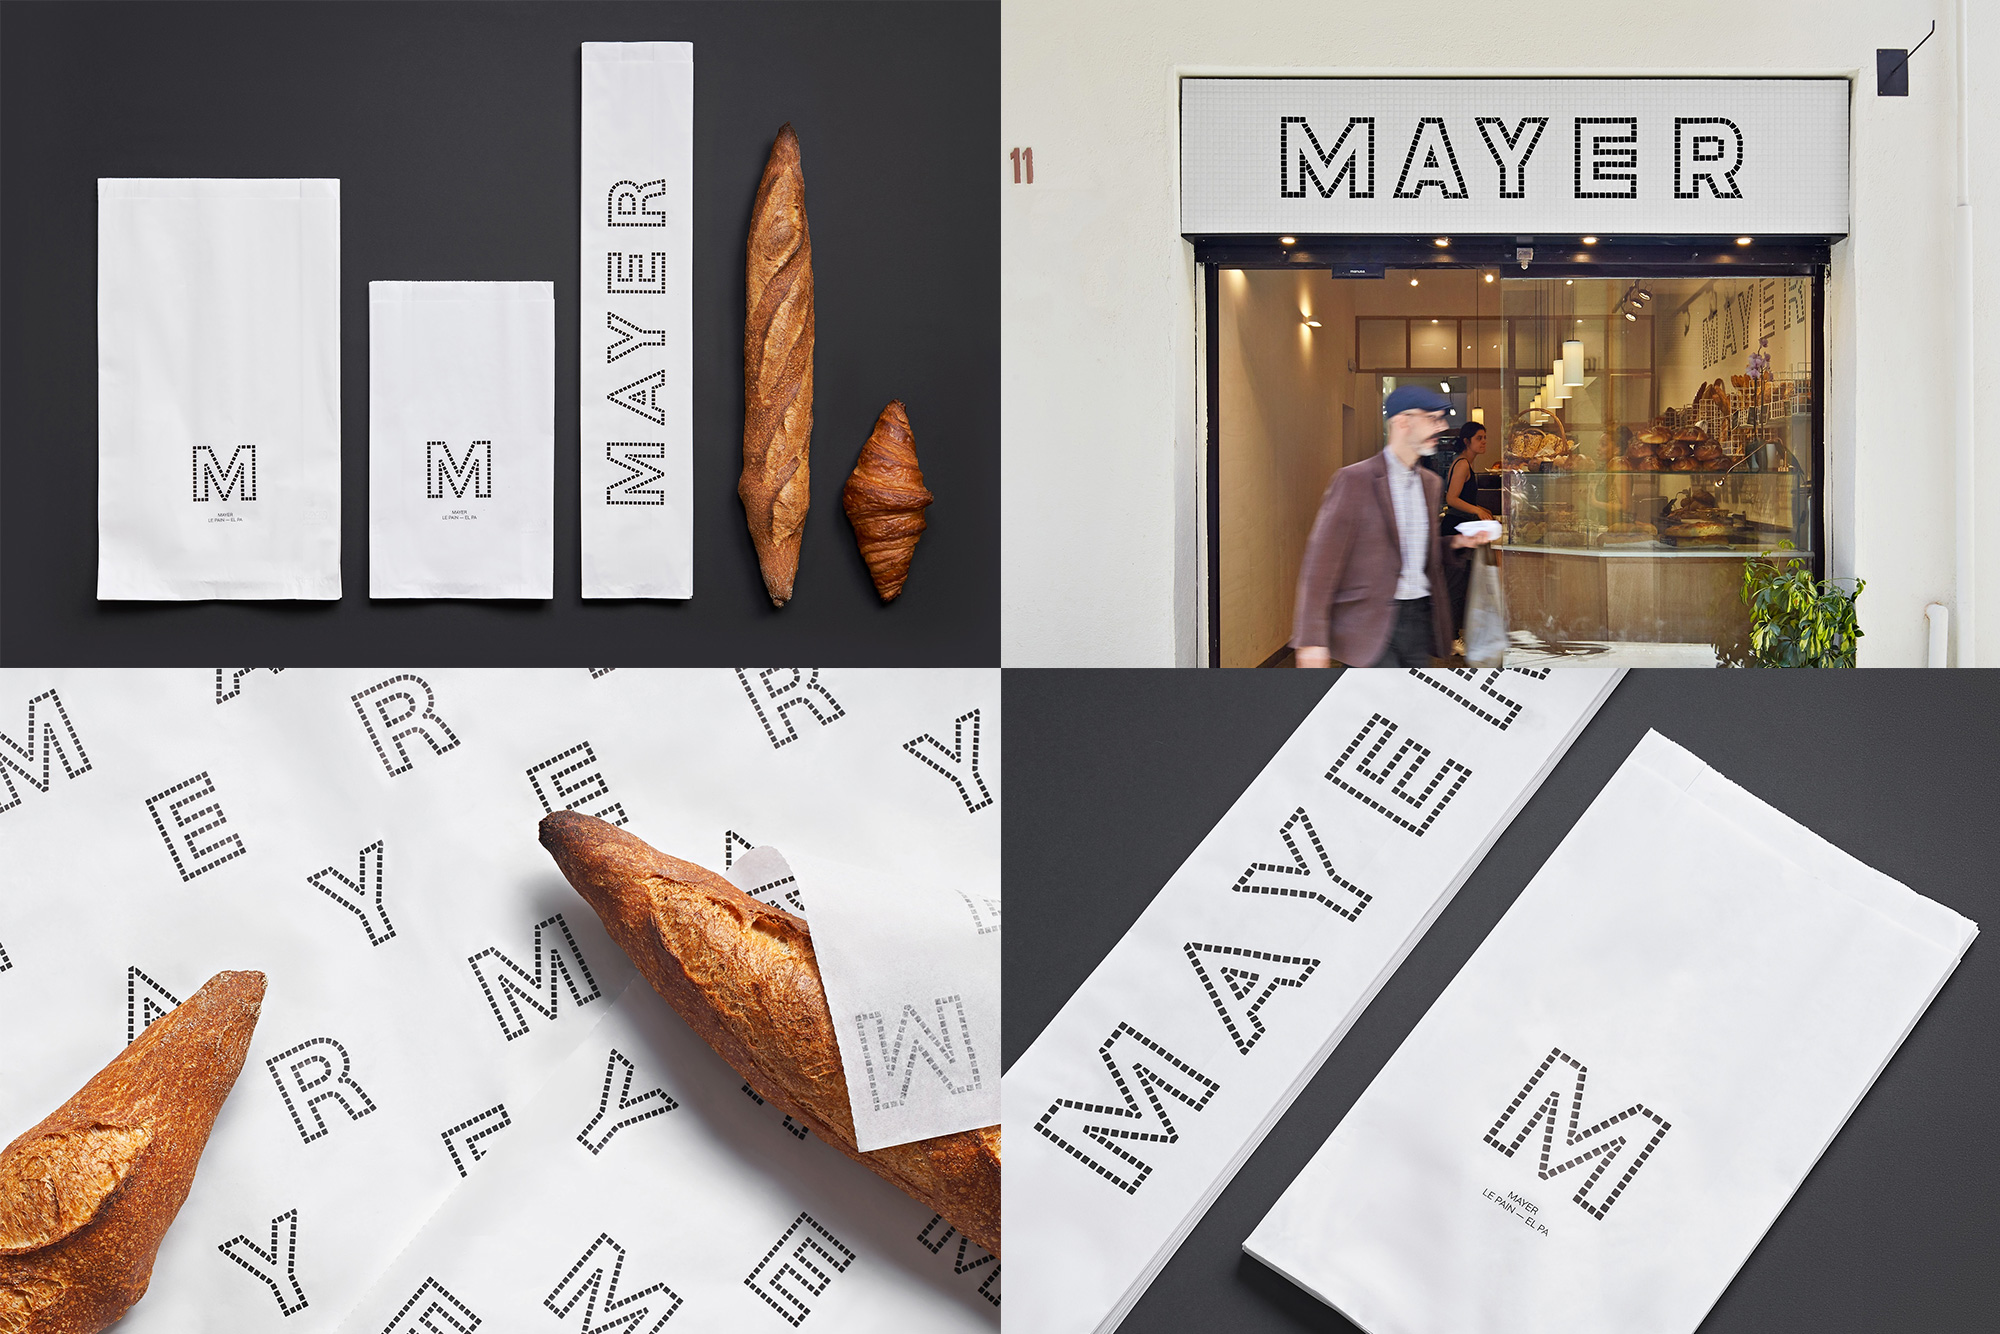 Mayer by Forma